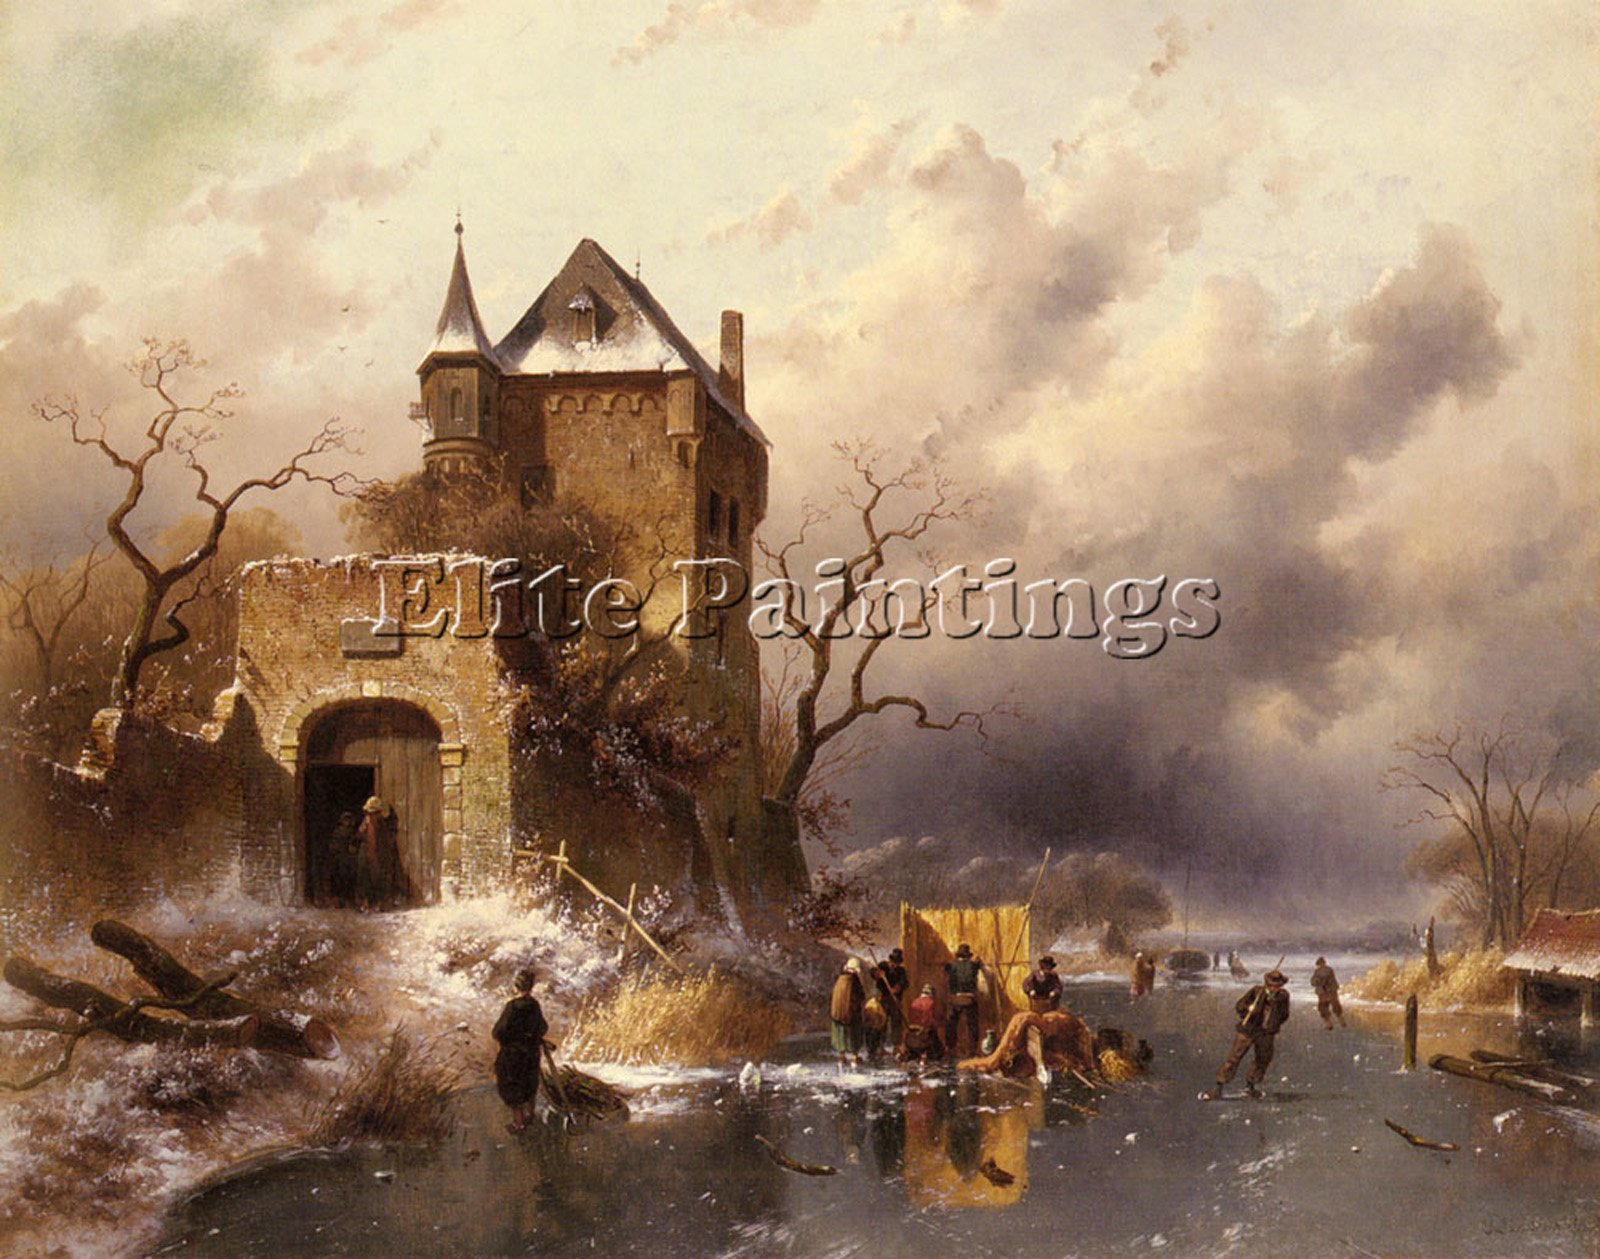 LEICKERT CHARLES SKATERS FROZEN LAKE RUINS CASTLE ARTIST PAINTING OIL CANVAS ART 40x48inch MUSEUM QUALITY